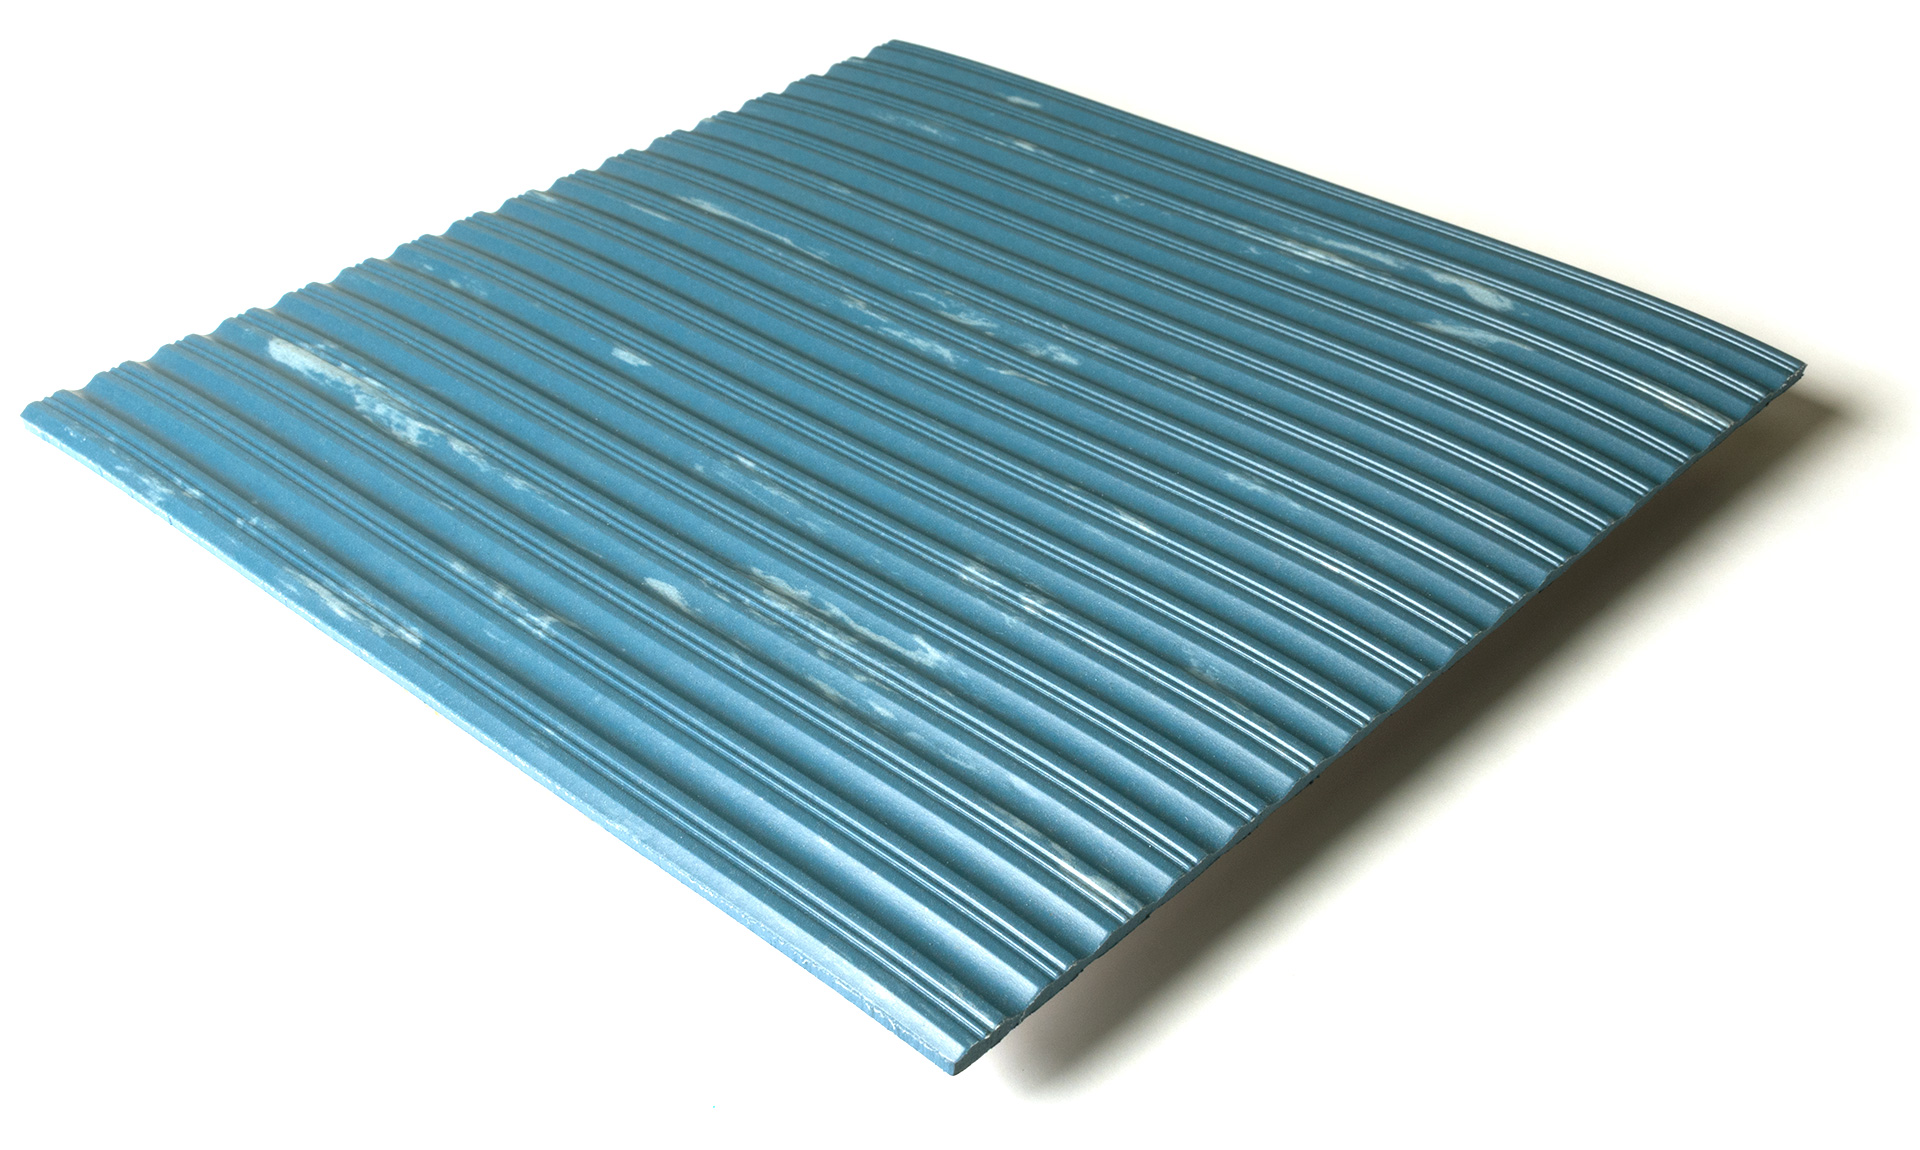 Standard transit flooring in marbled blue, ribbed